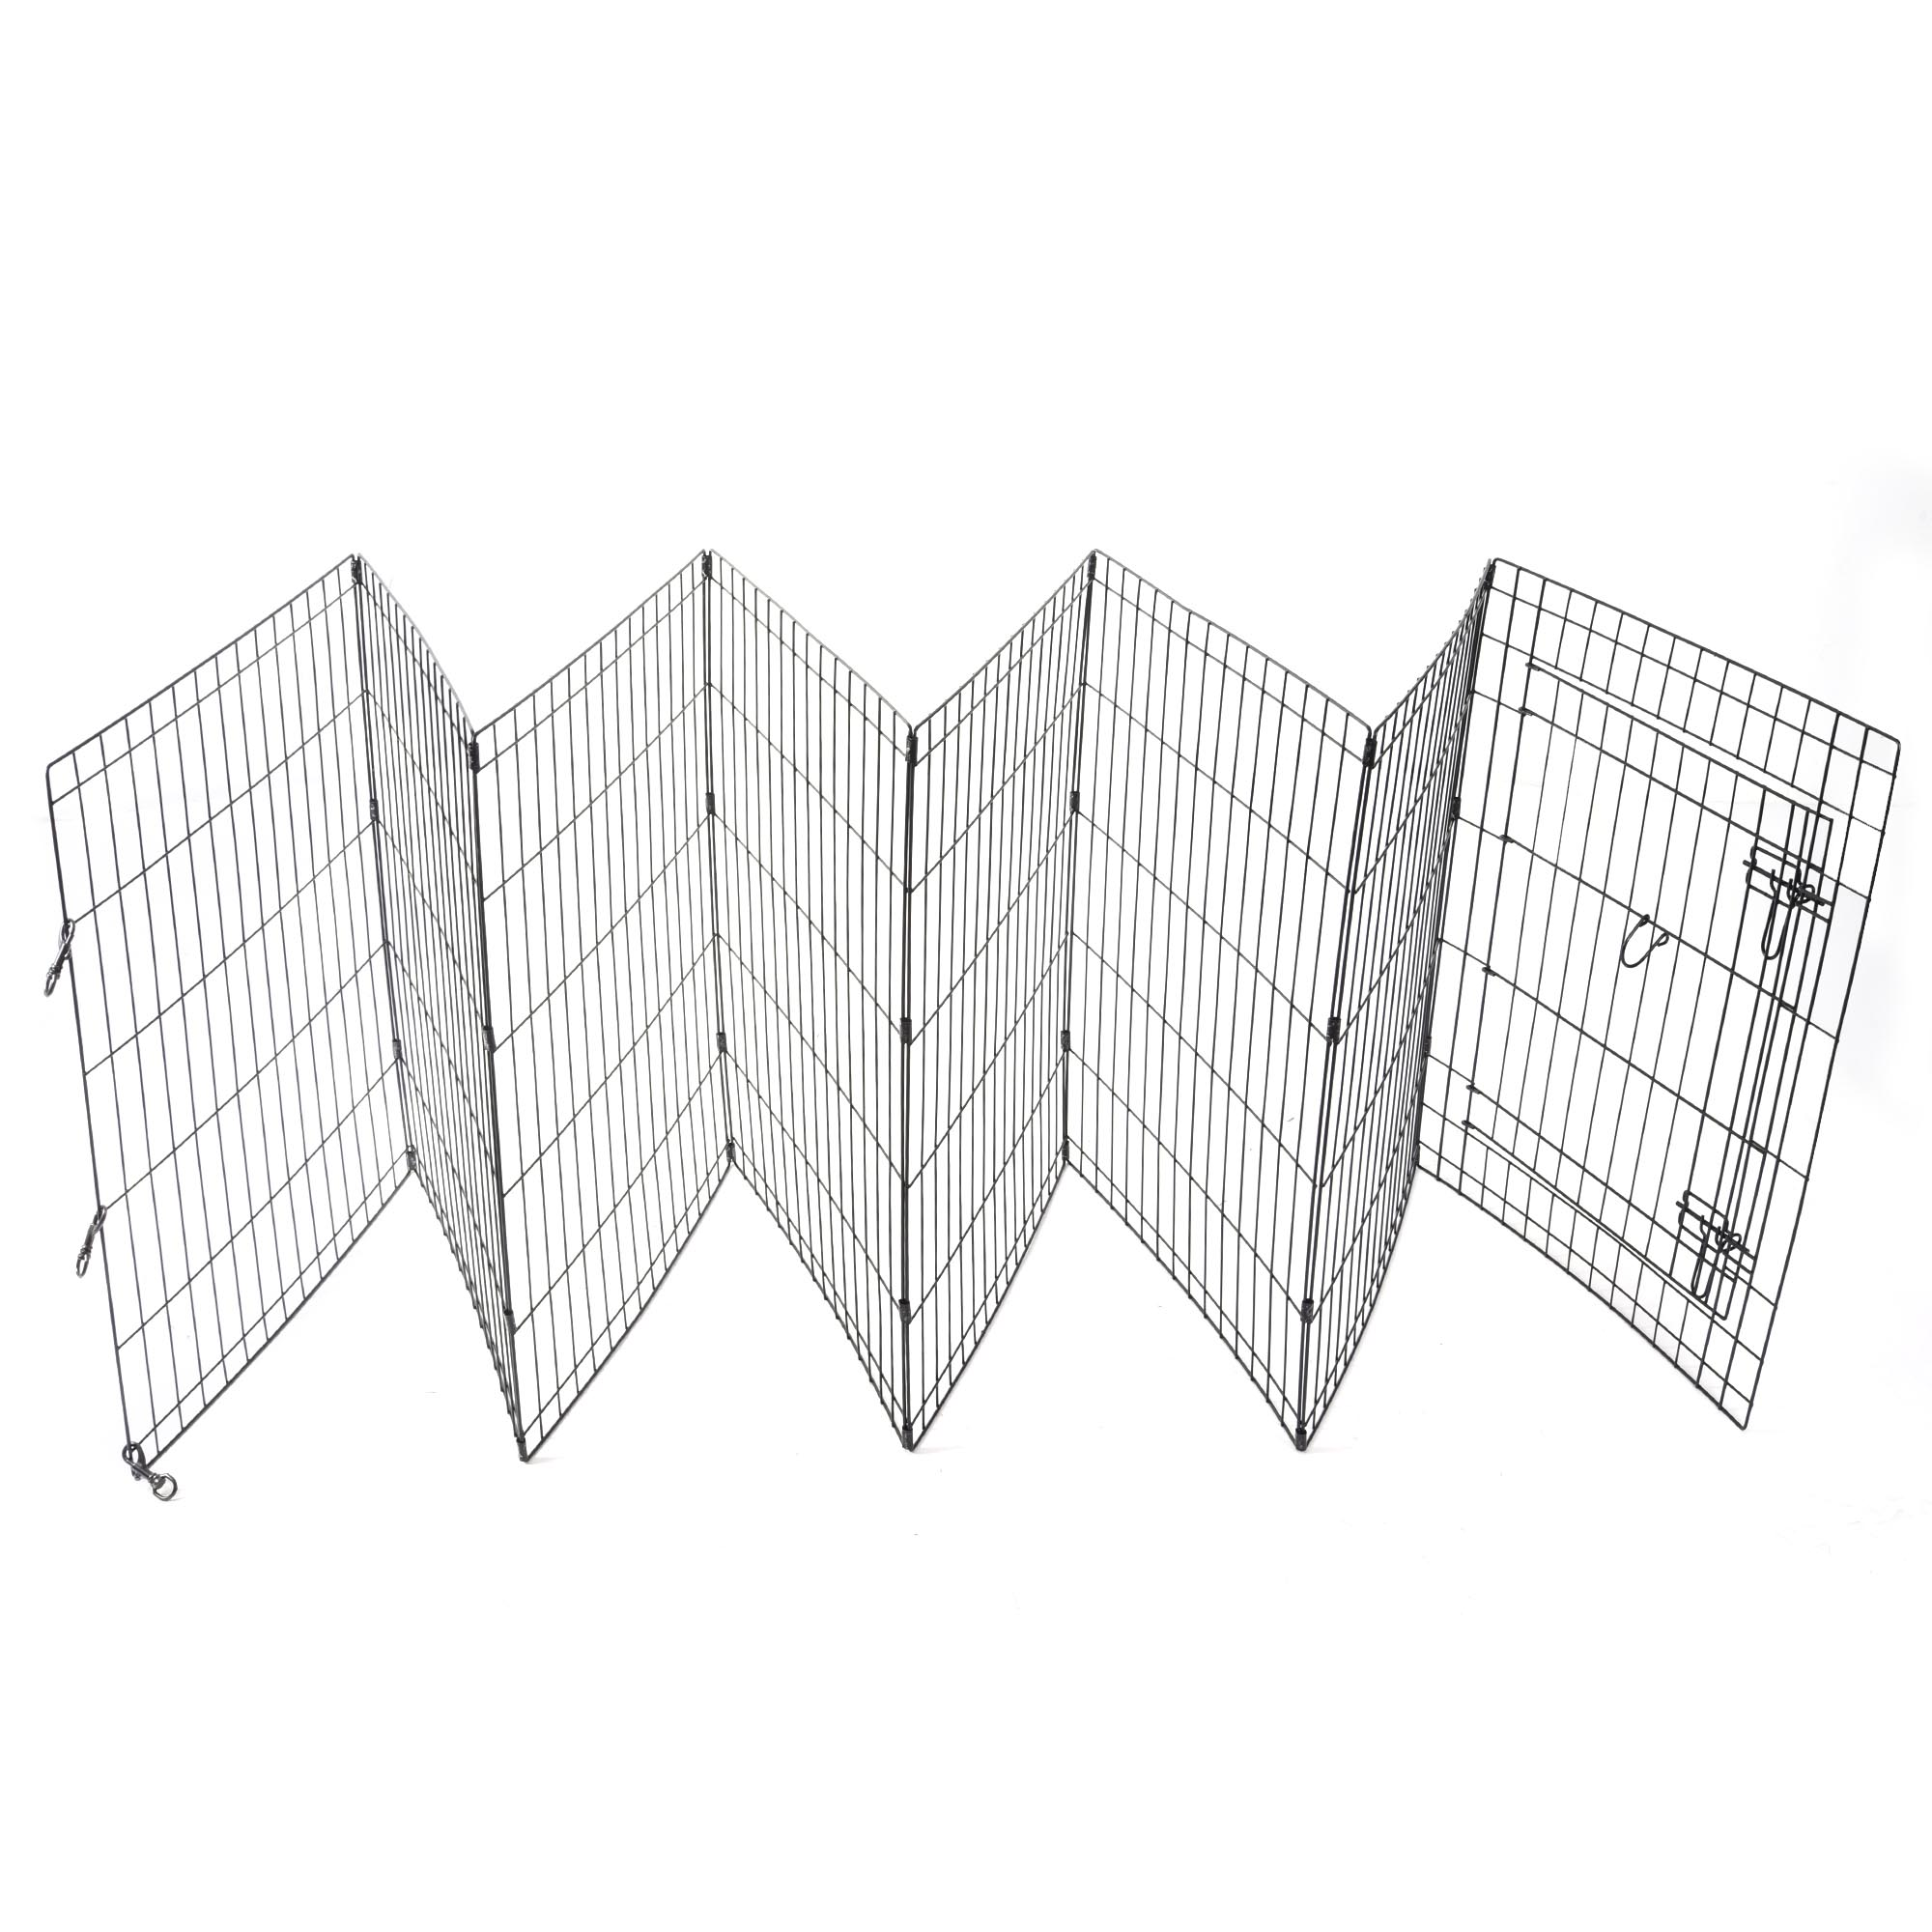 24-30-36-42-48-Dog-Pet-Playpen-Metal-Crate-Fence-Cage-8-Panel-Exercise-Play-Pen thumbnail 16